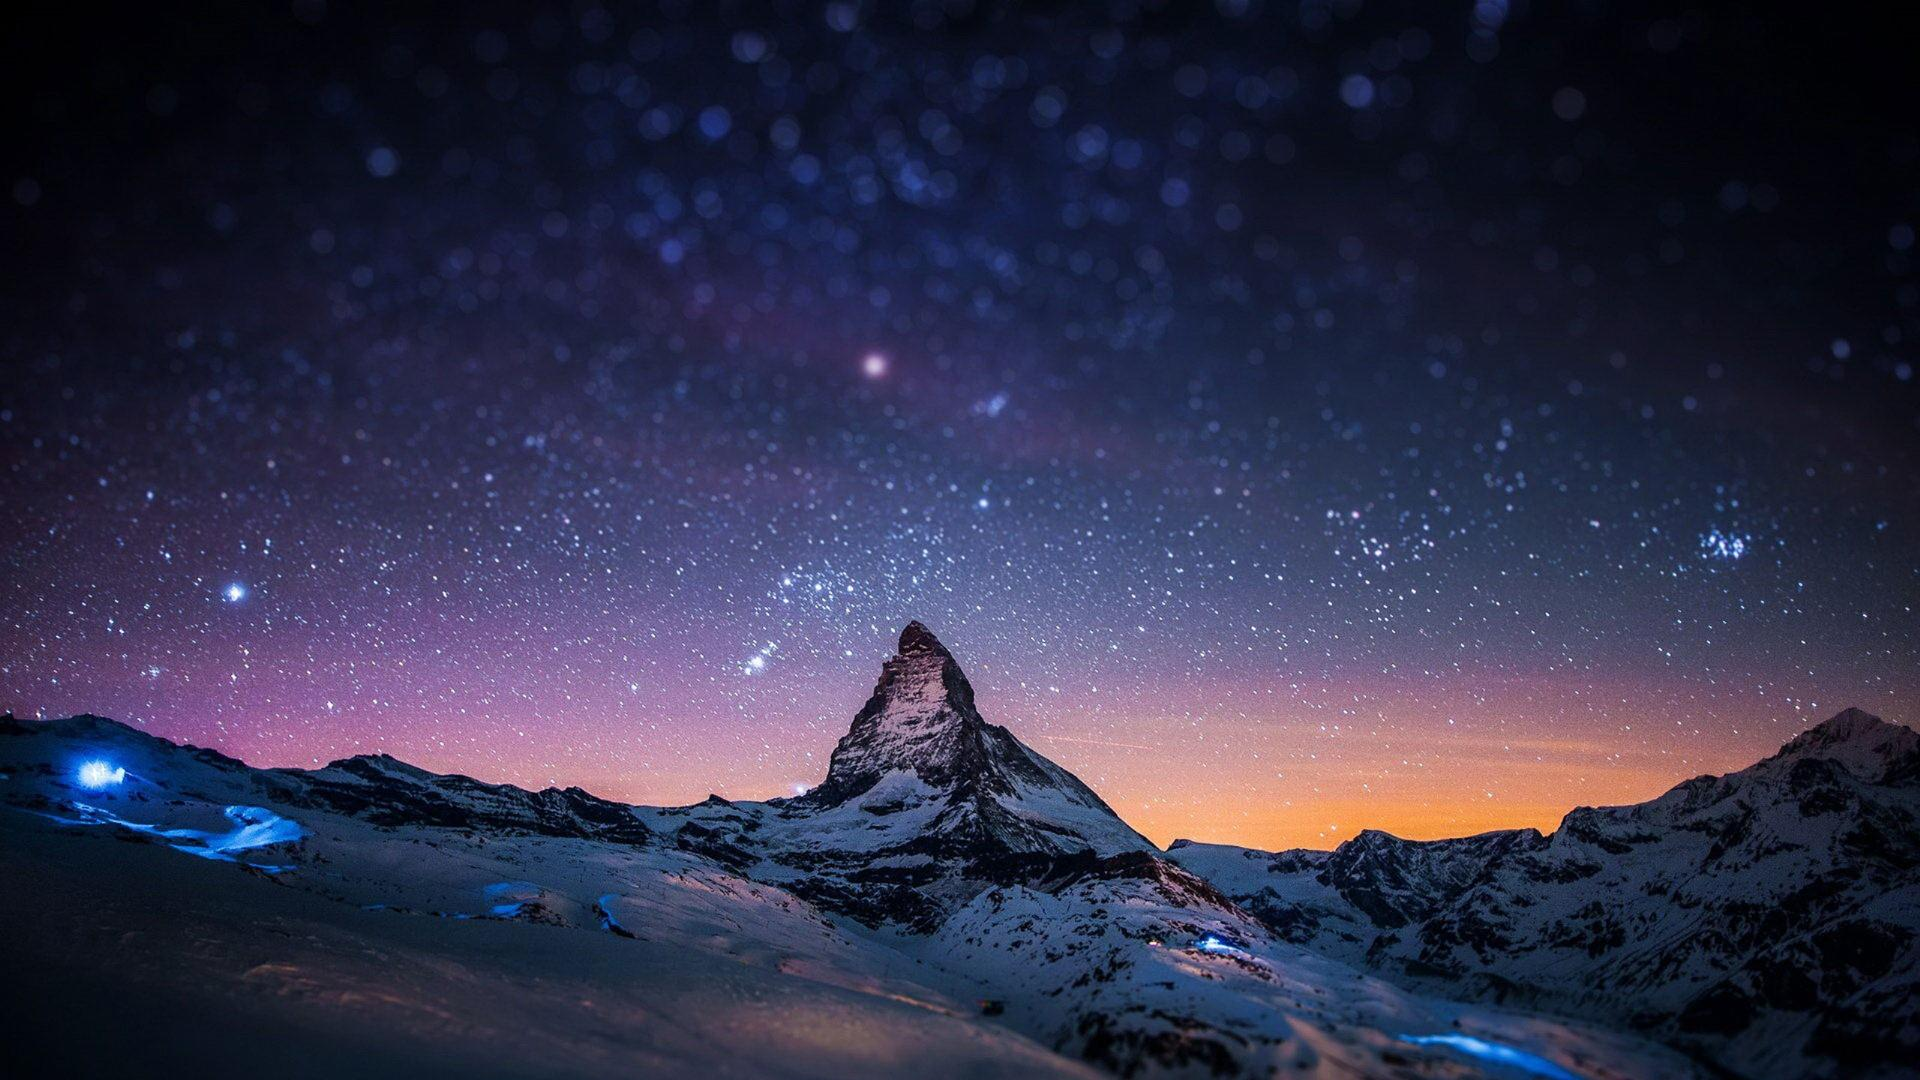 Matterhorn at ngith wallpaper